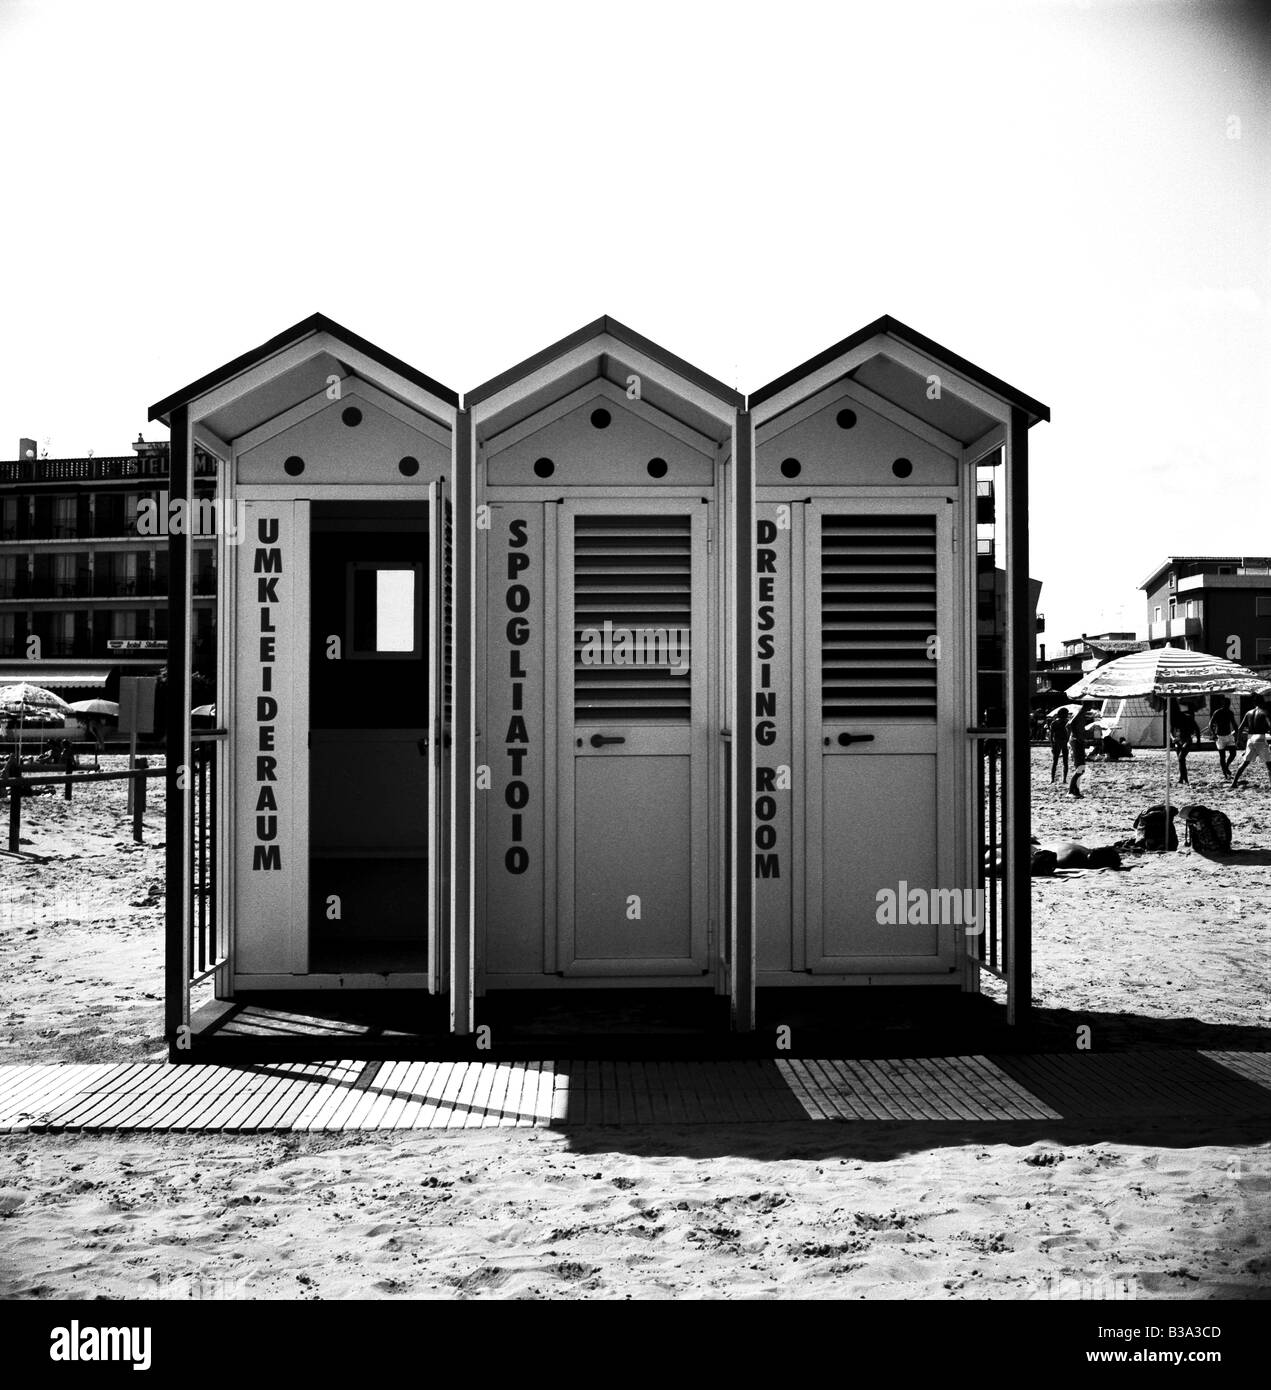 dressing room on the beach in Caorle, Italy - Stock Image